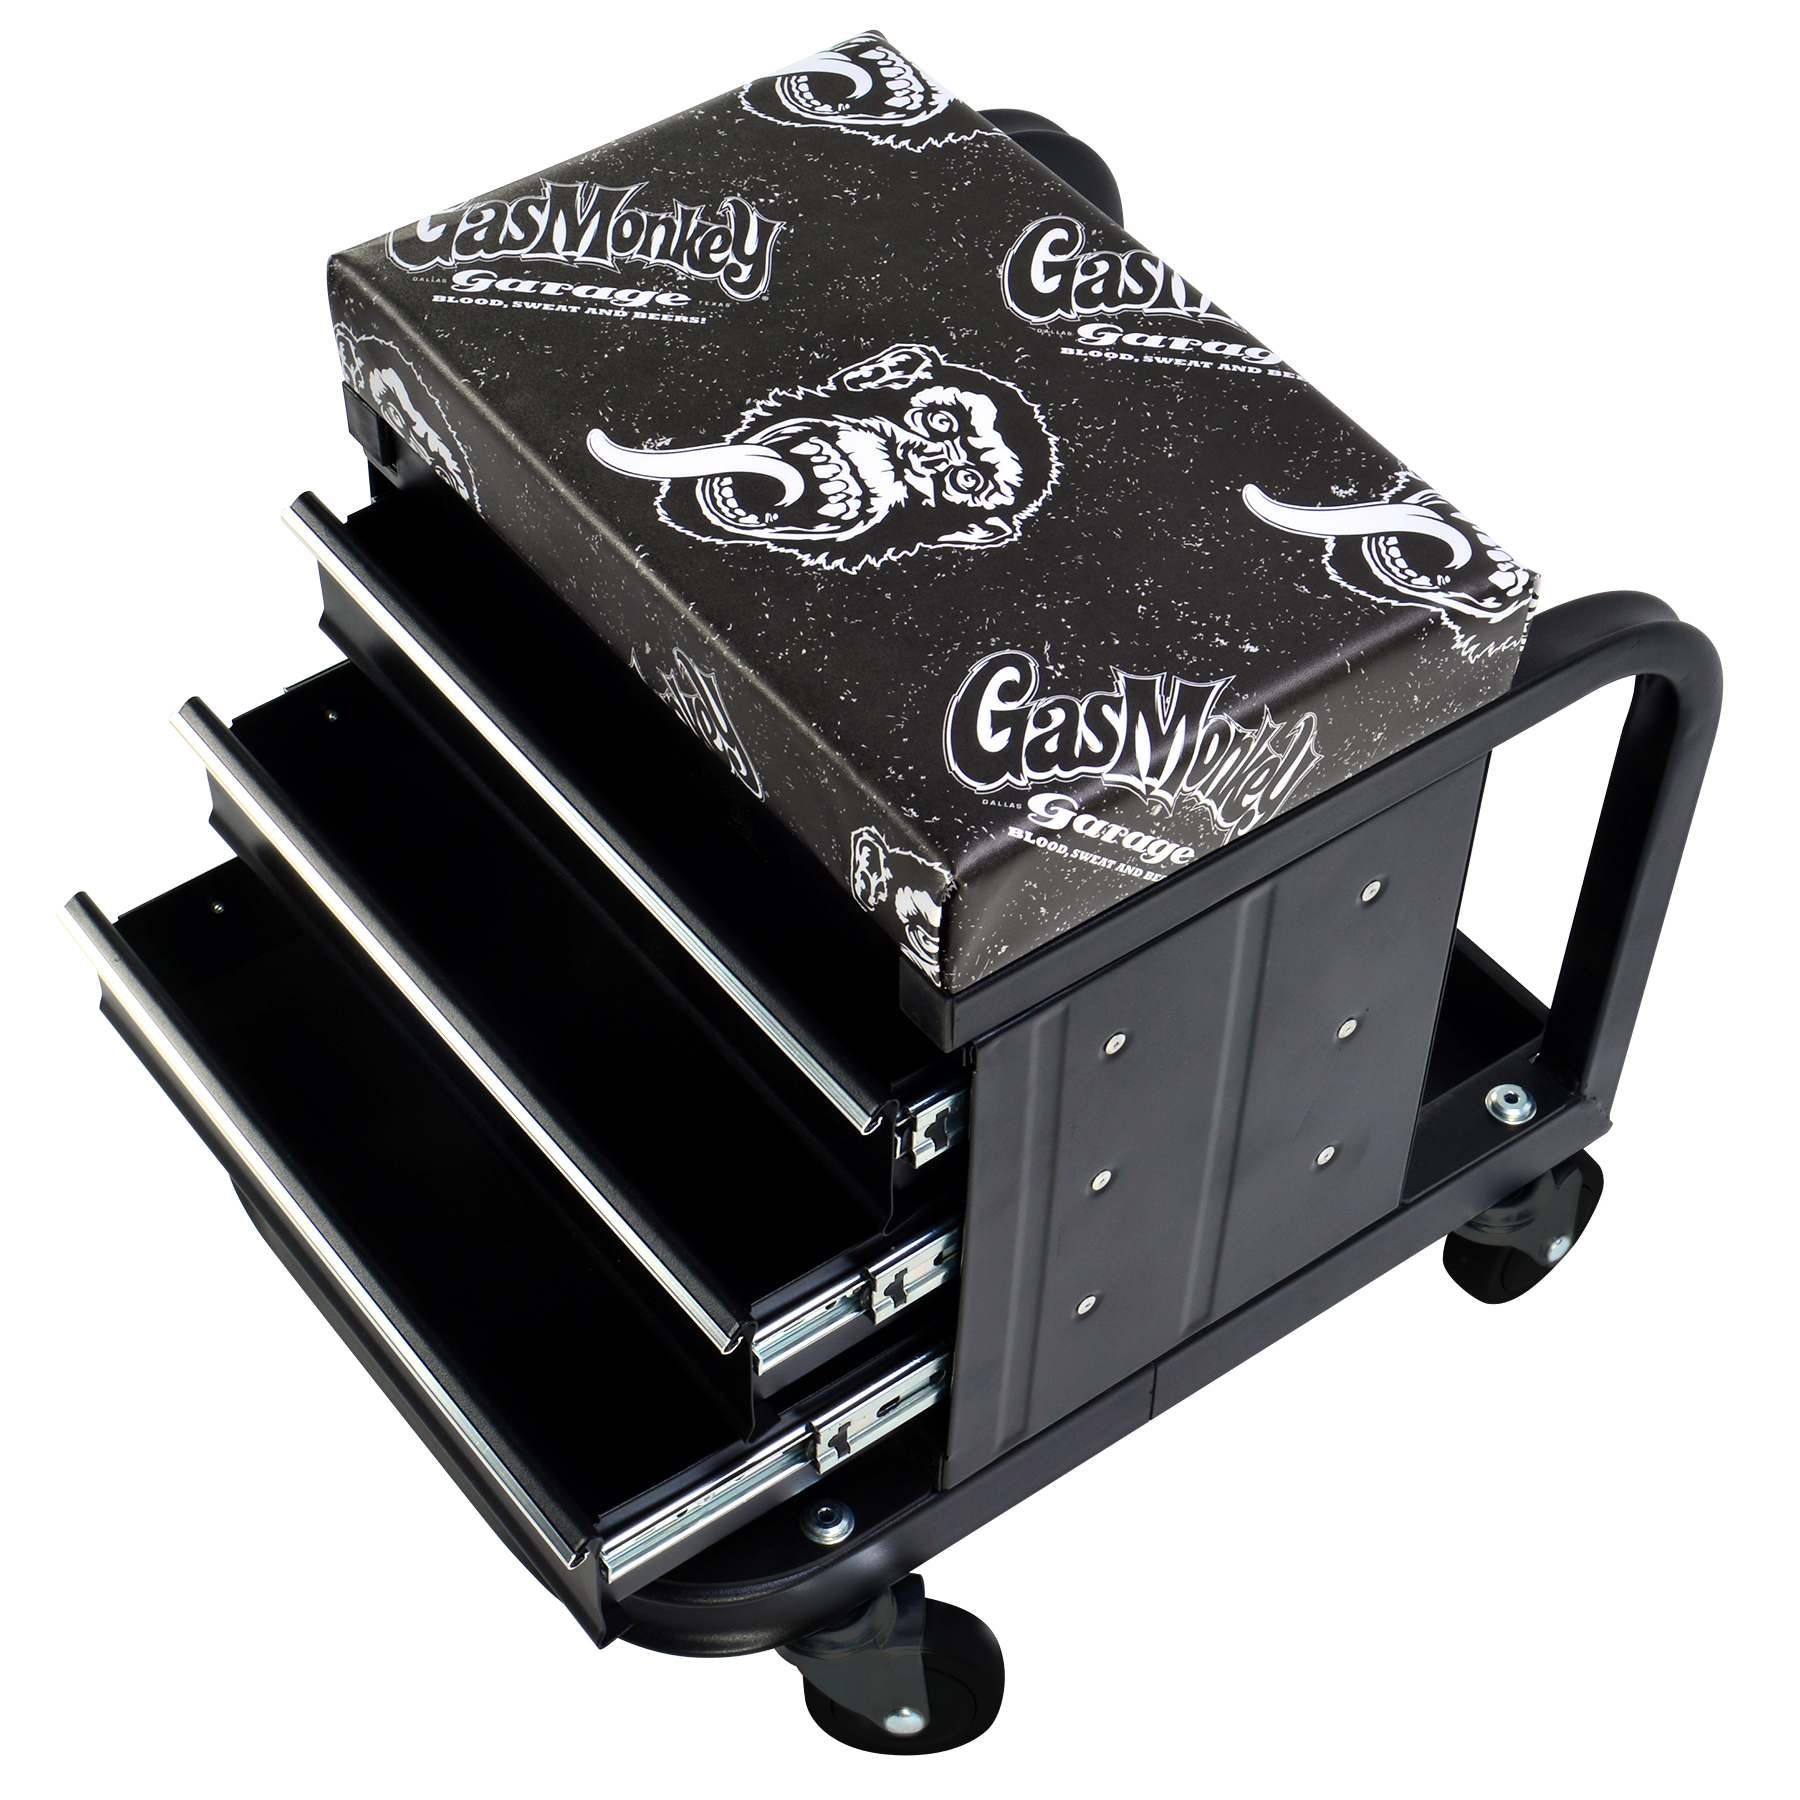 Gas Monkey Garage Creeper Seat and Tool Box Combo - 3-Drawers Toolbox with 4 Rolling Casters - 450 Lbs Capacity